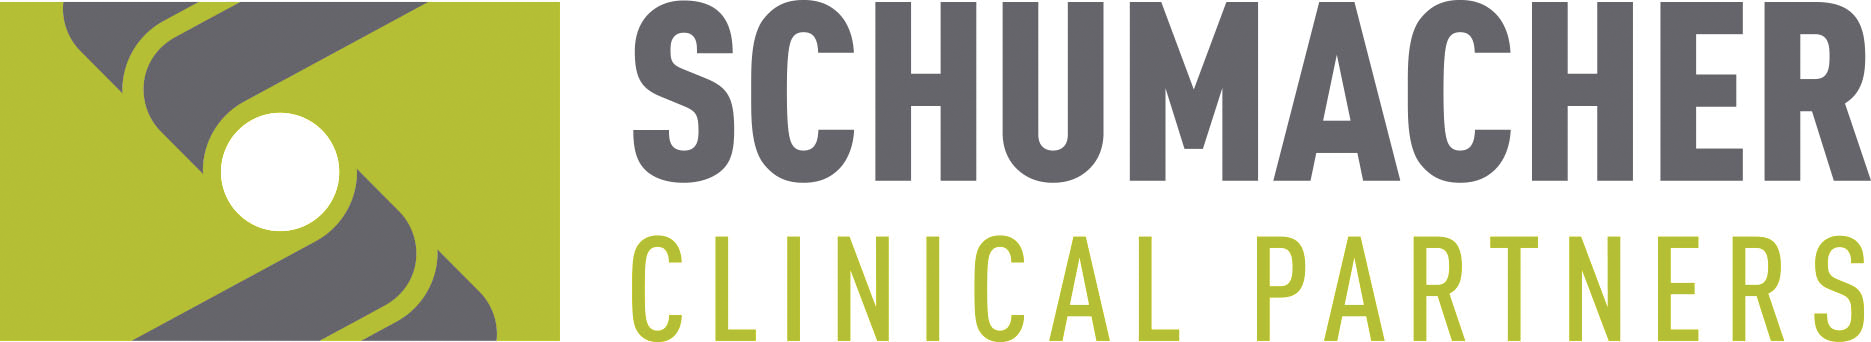 Schumacher Clinical Partners